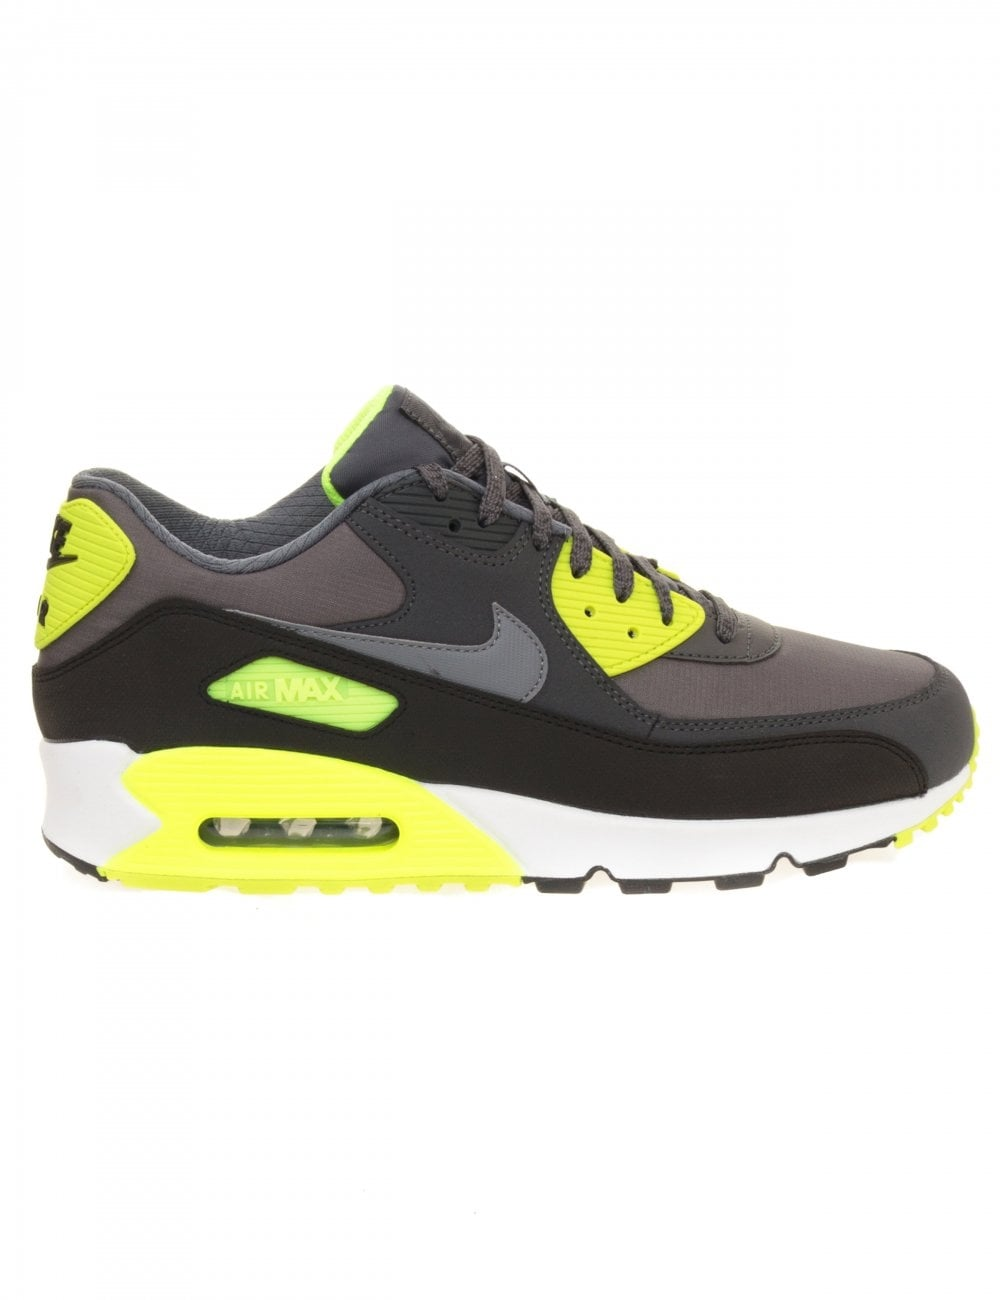 cheap for discount a2786 ce748 Air Max 90 Essential - Dark Grey/Cool Grey/Volt